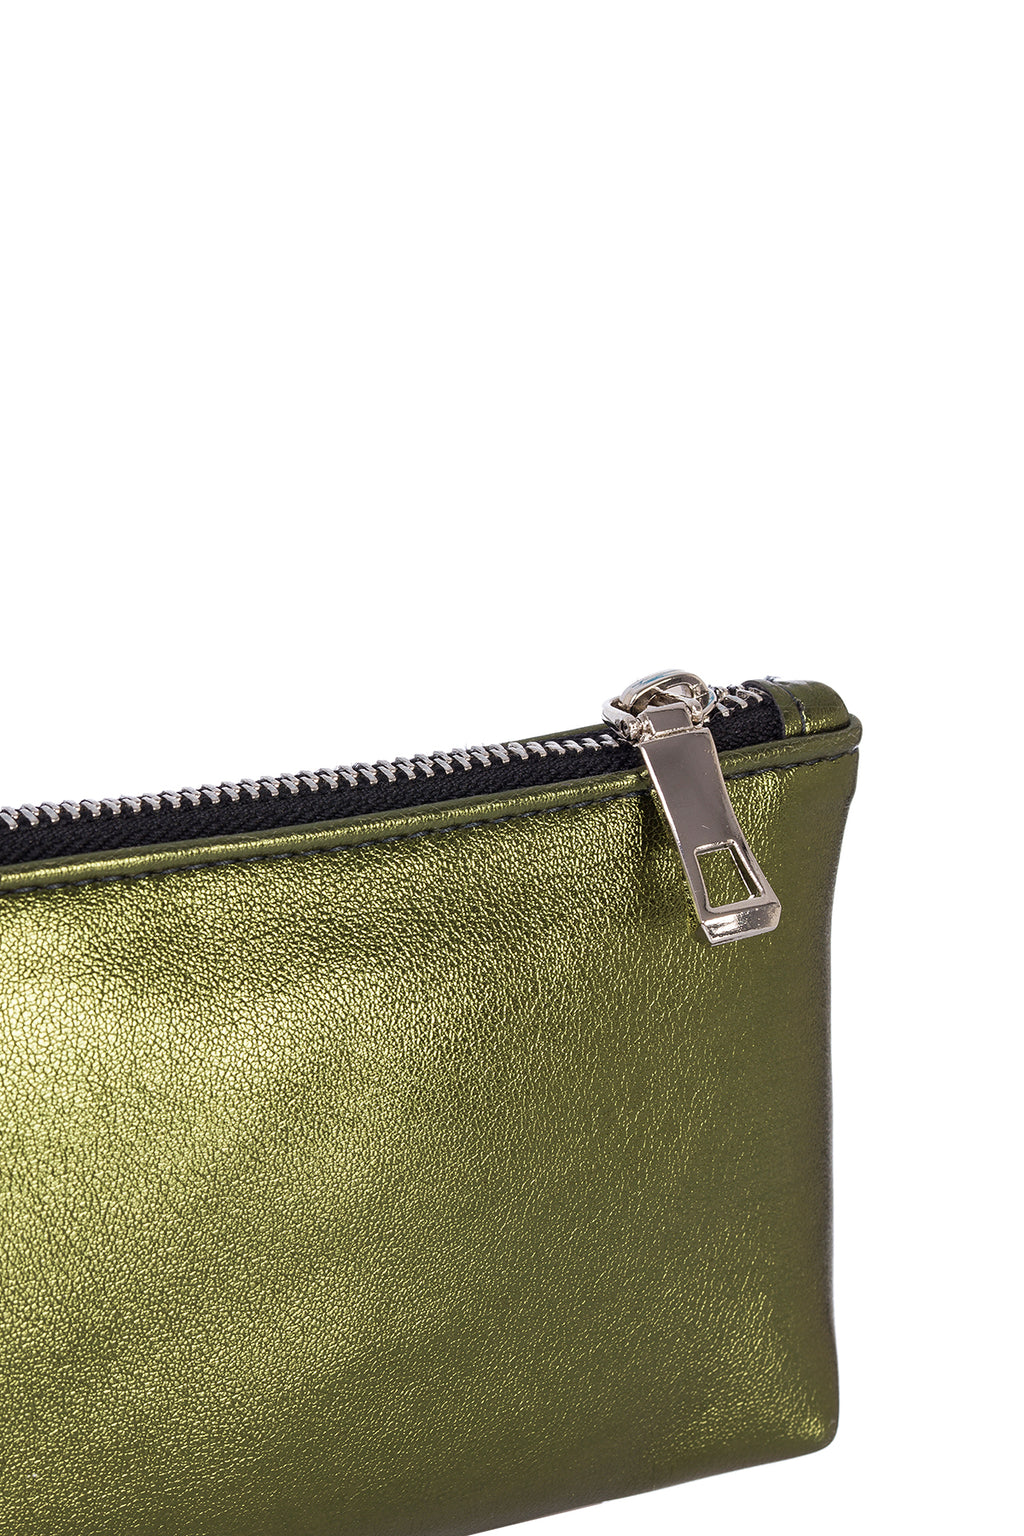 U-hide <br> Inner Pouch <br> Small - Metallic Green